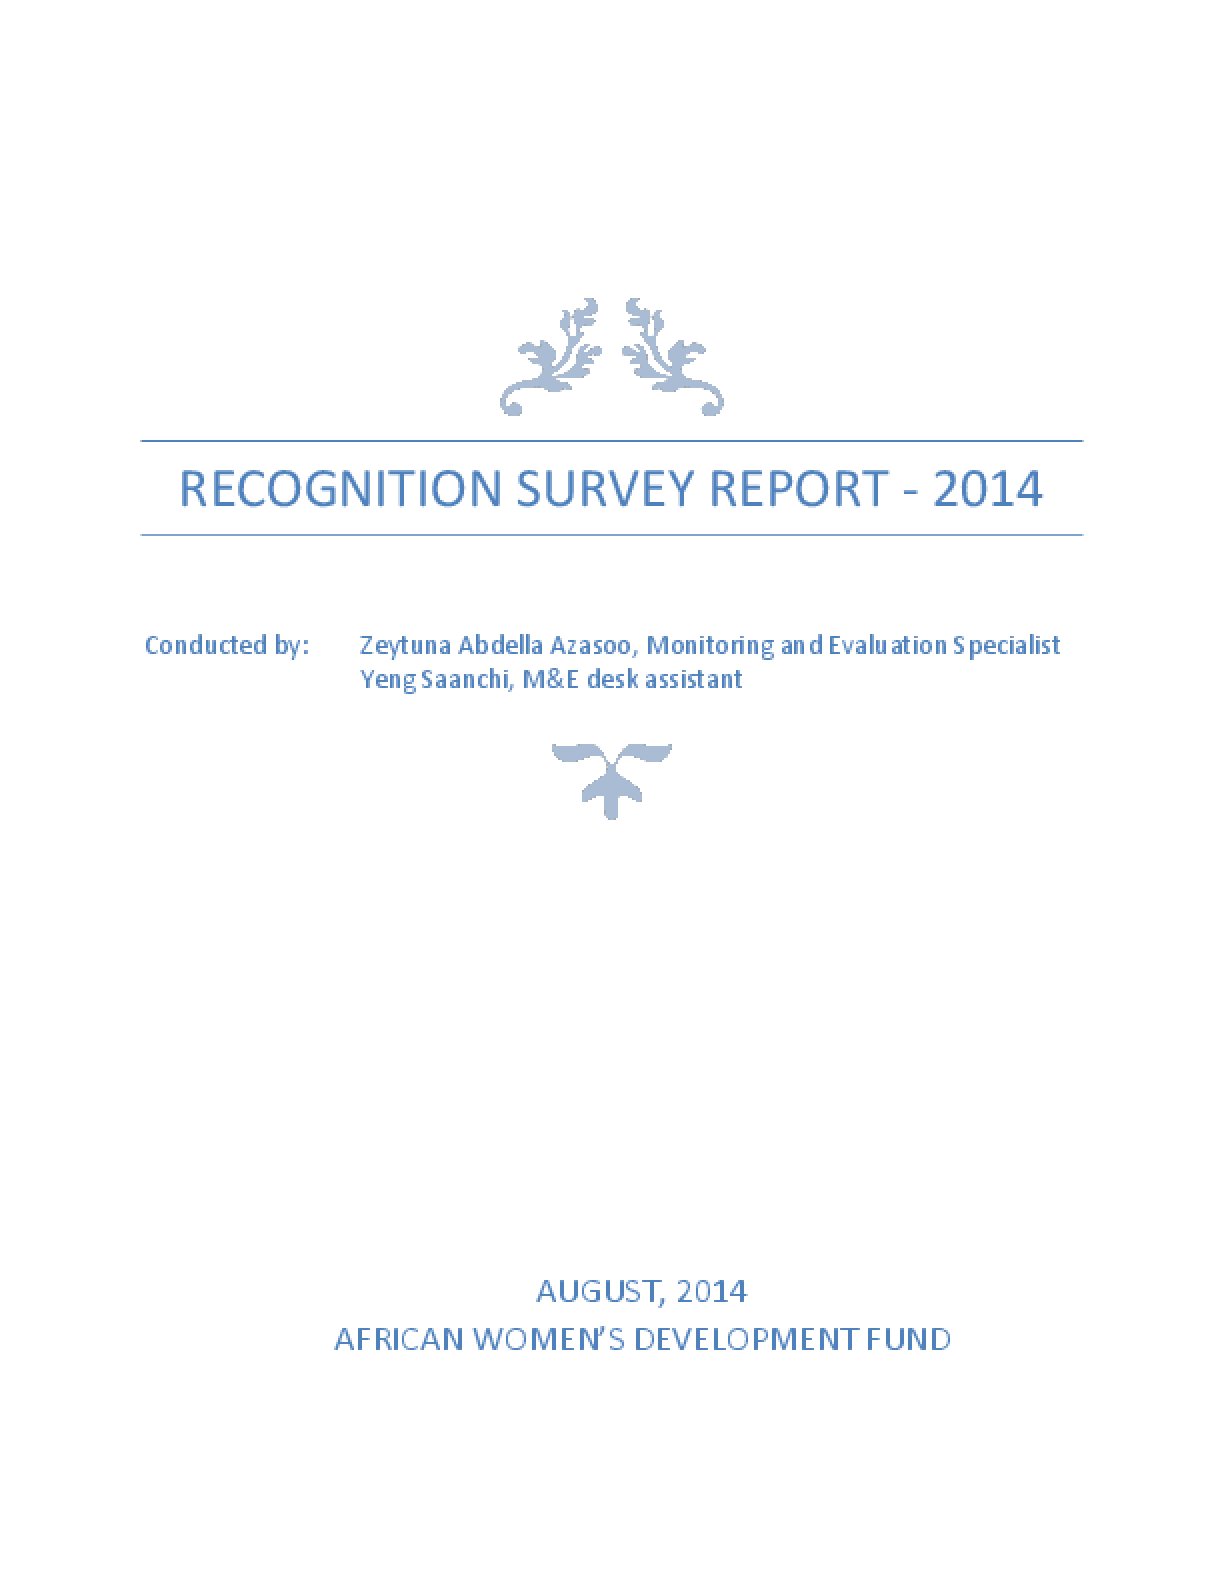 AWDF 2014 Grantee Recognition Survey Report